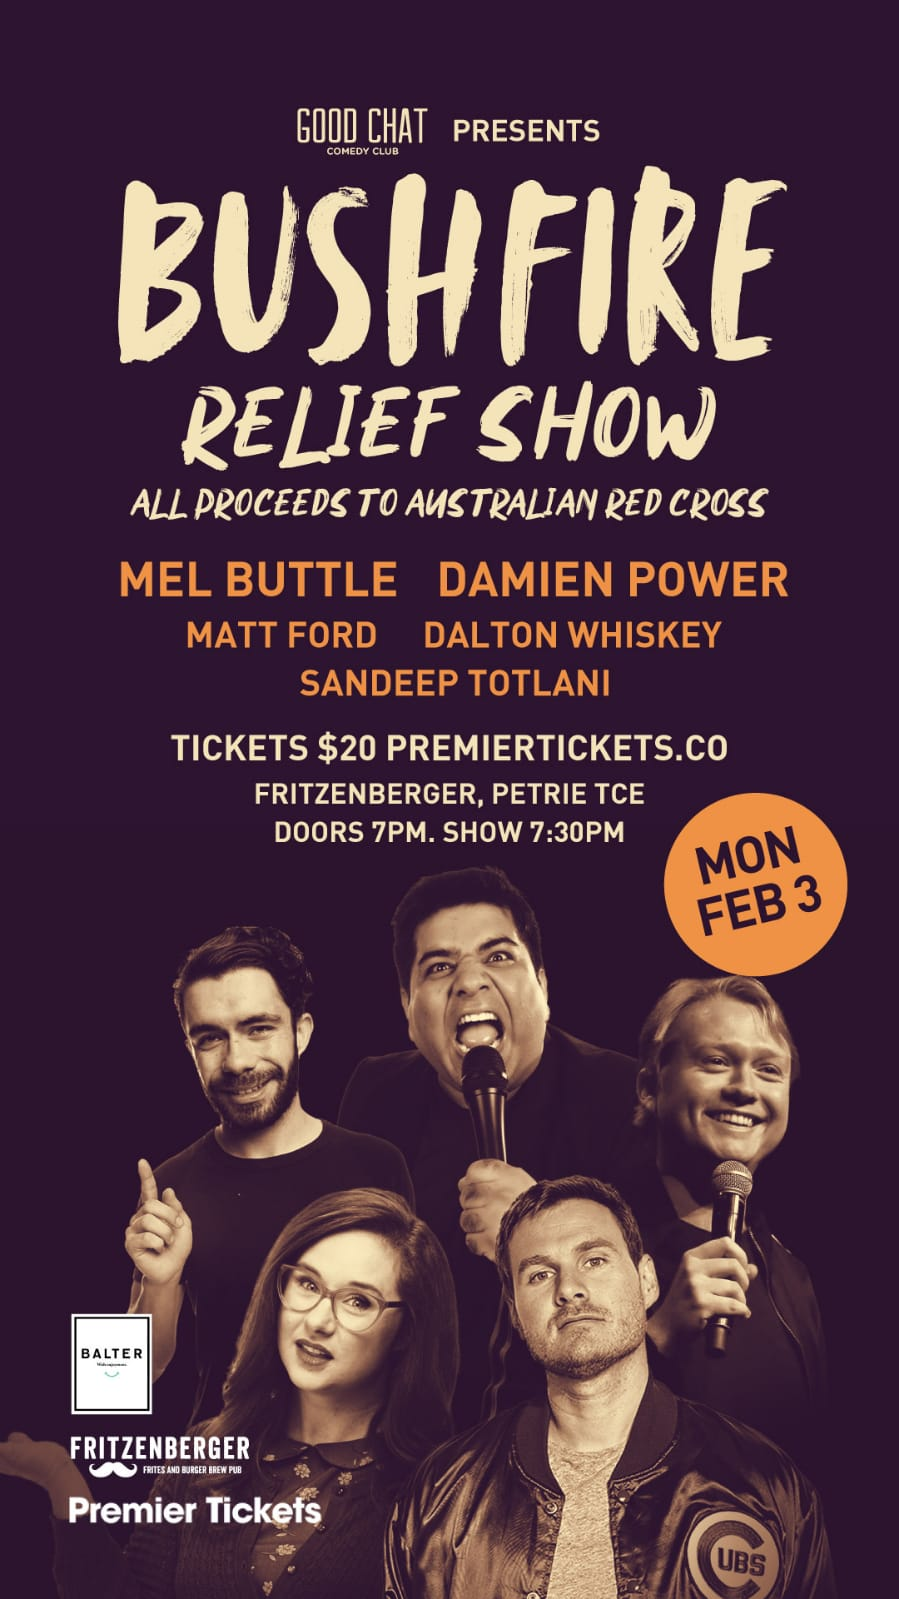 Bushfire Relief Show Brisbane – Stand up Comedy